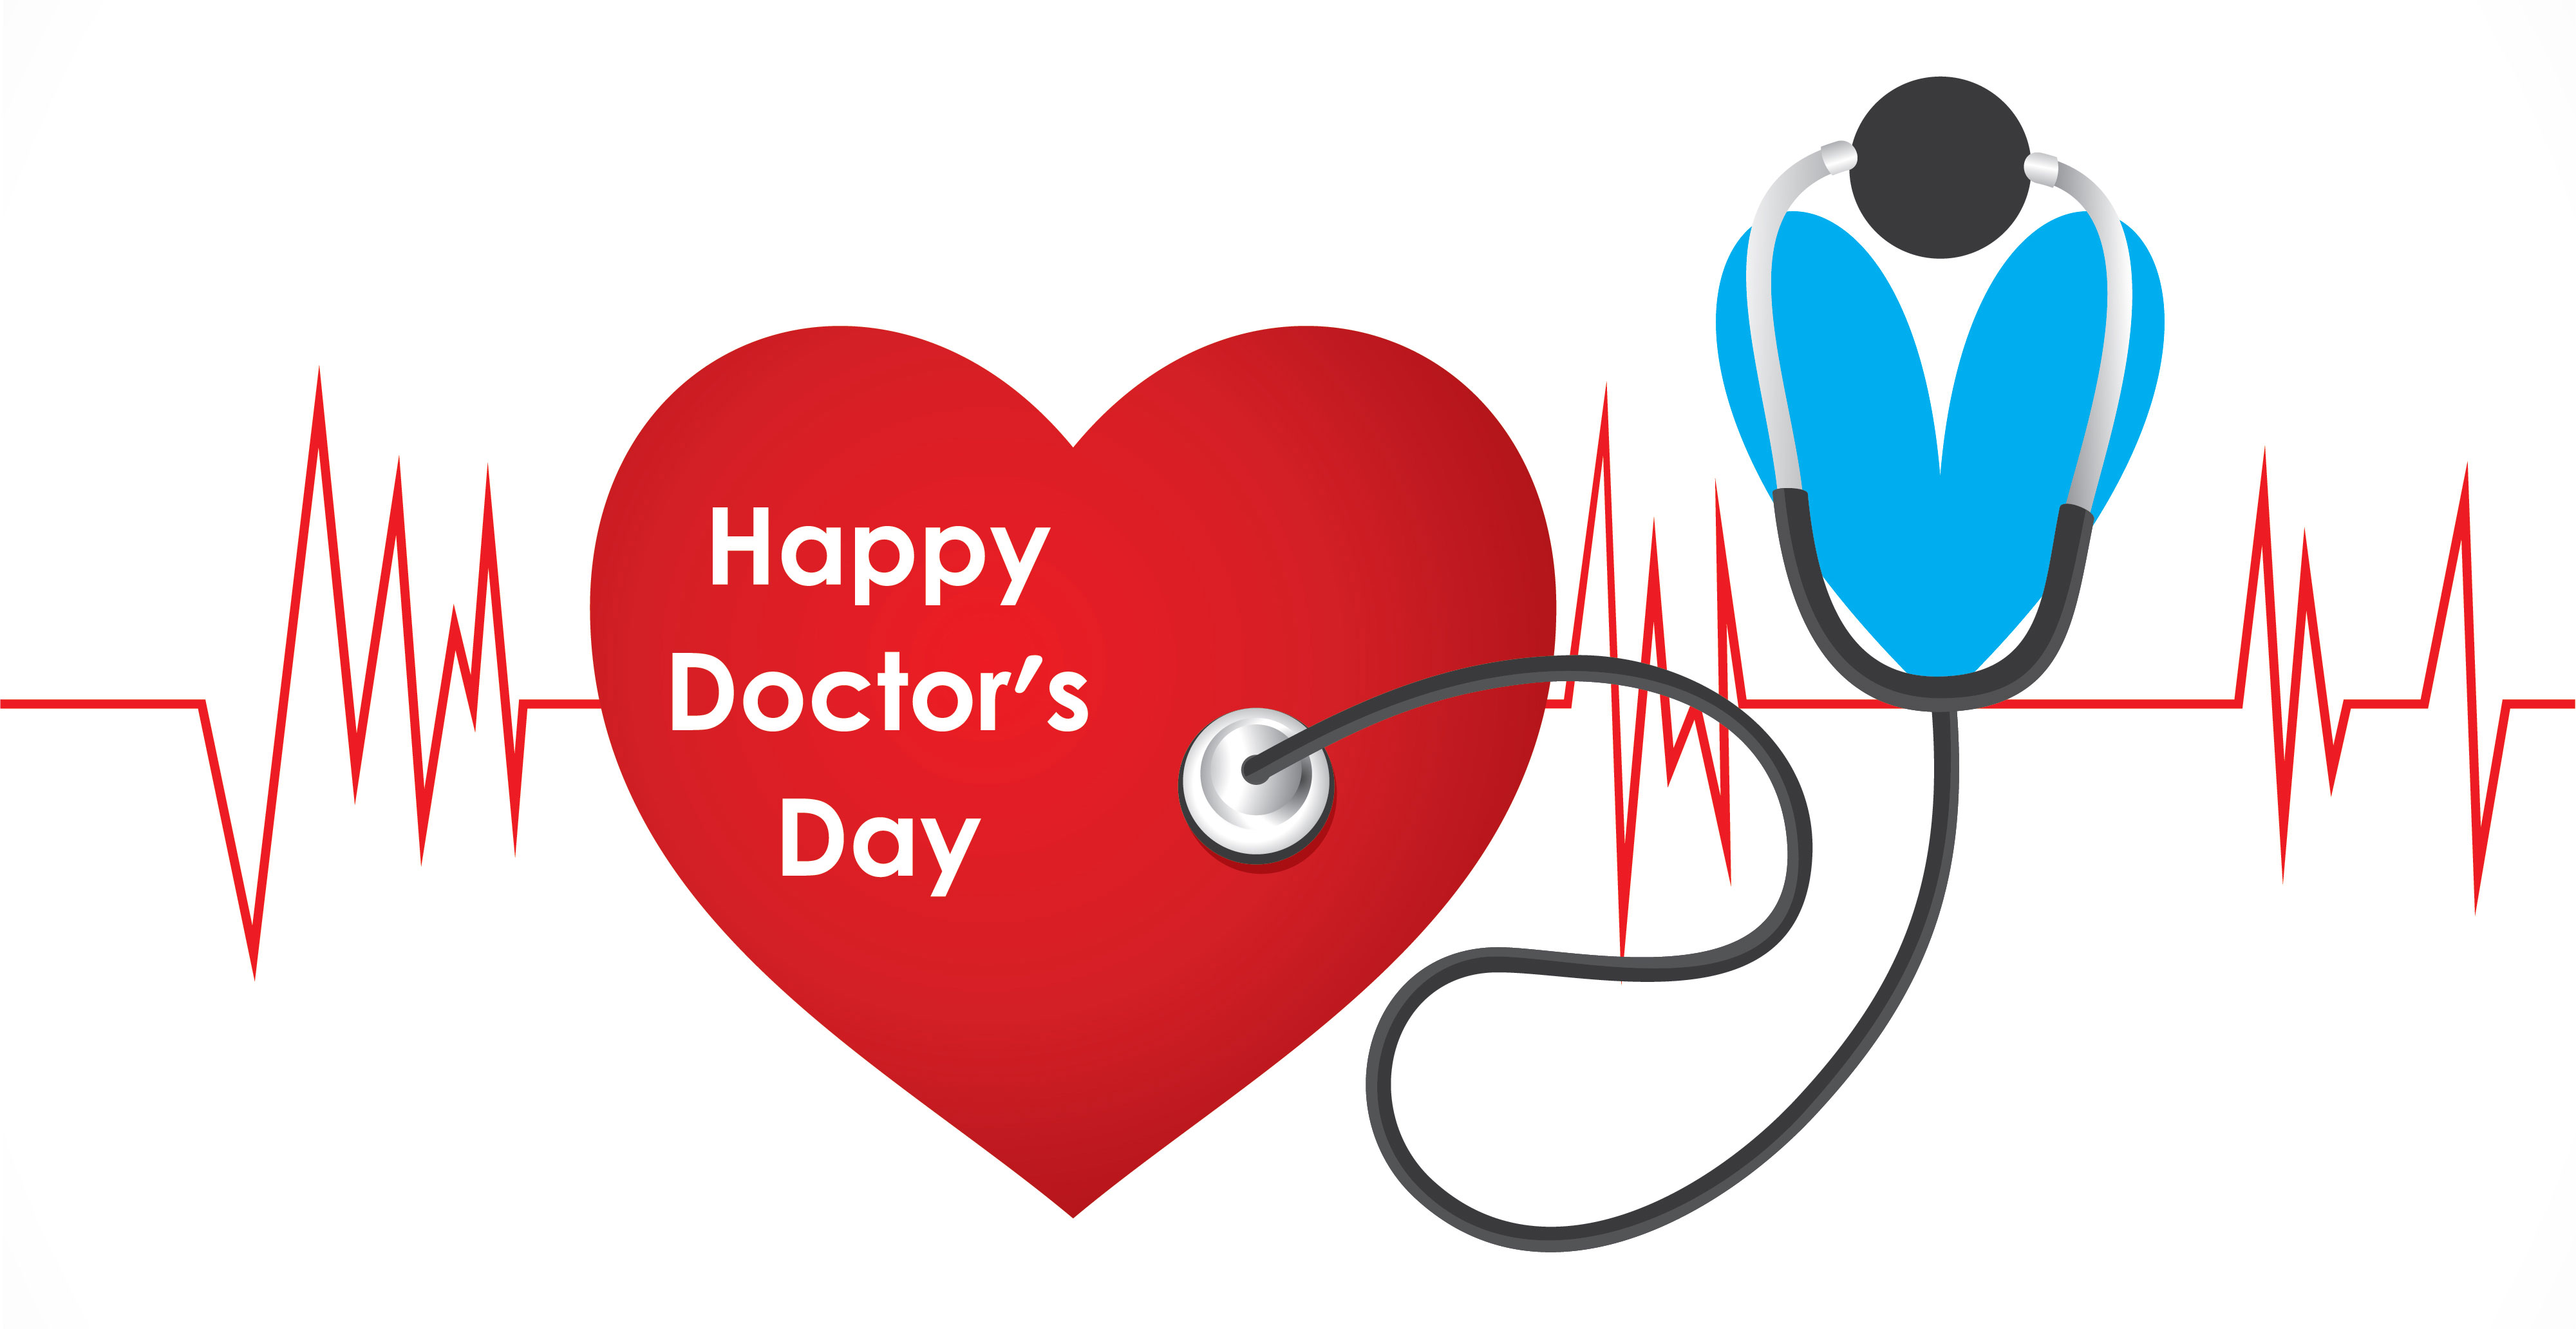 Doctor's Day Images for Whatsapp